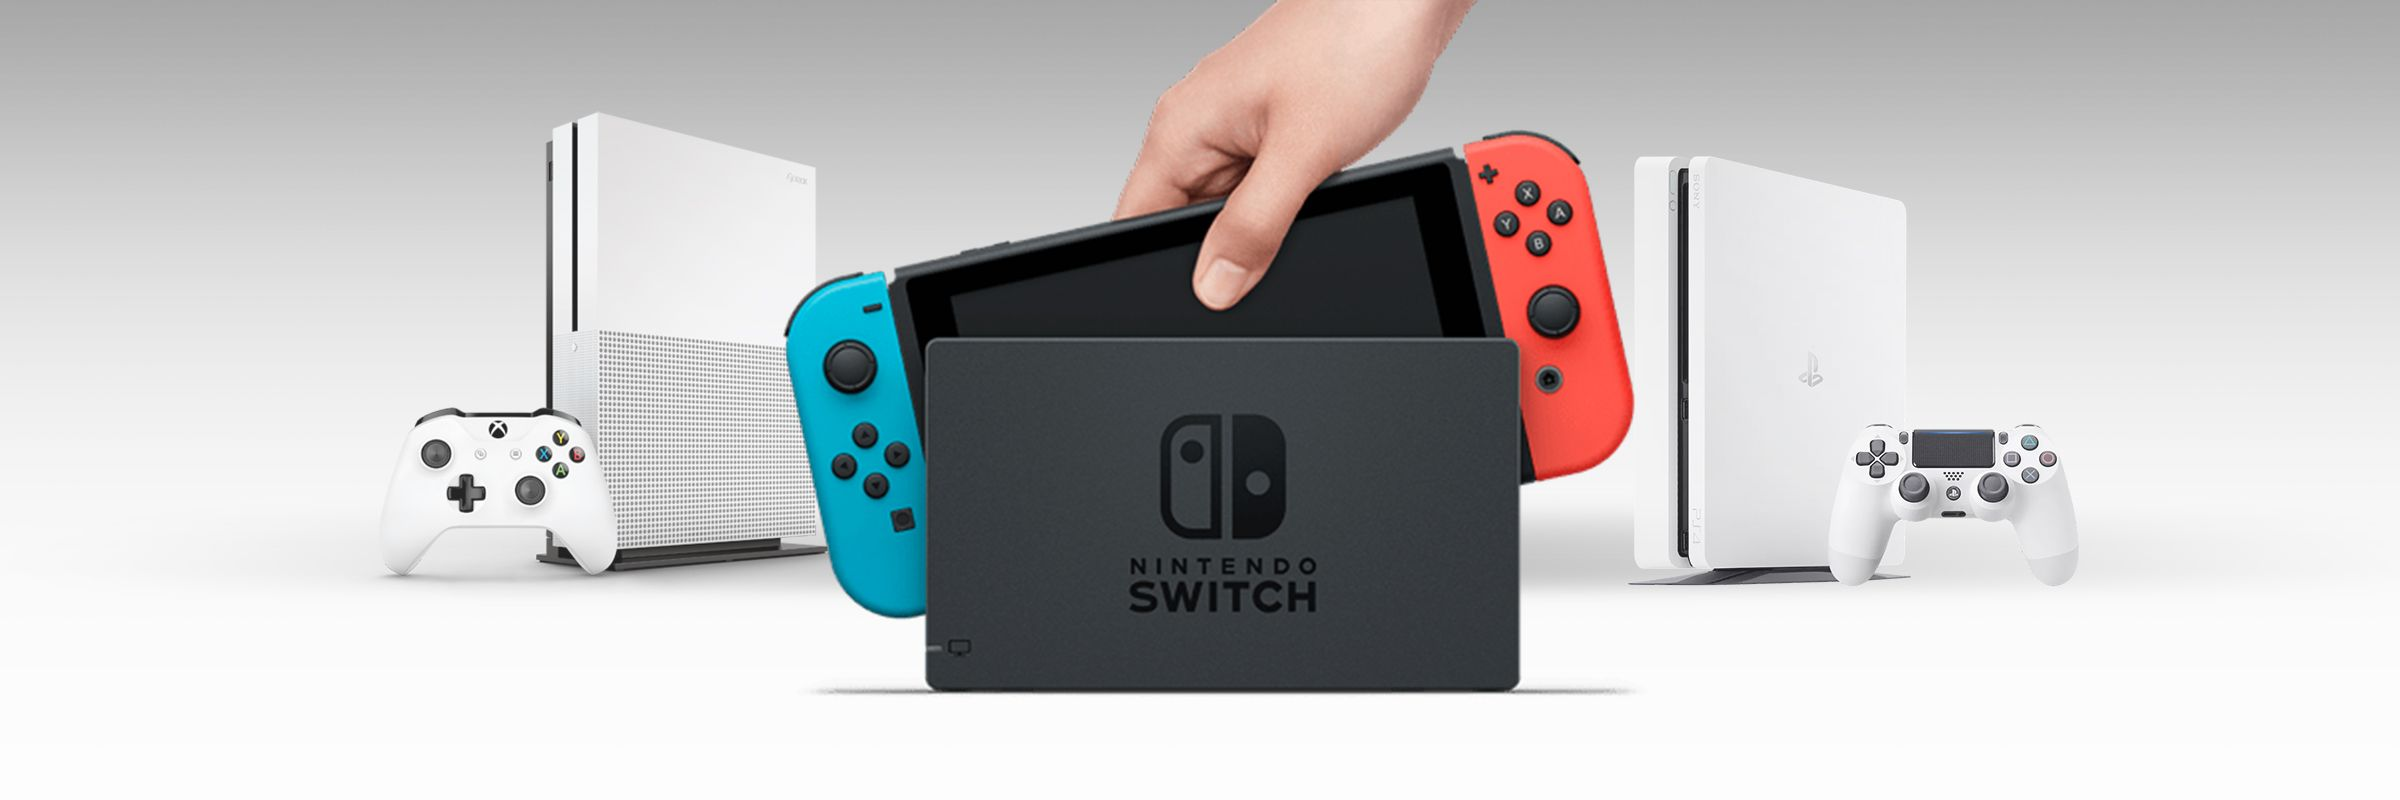 Nintendo's Strategy to Fight the Console Wars